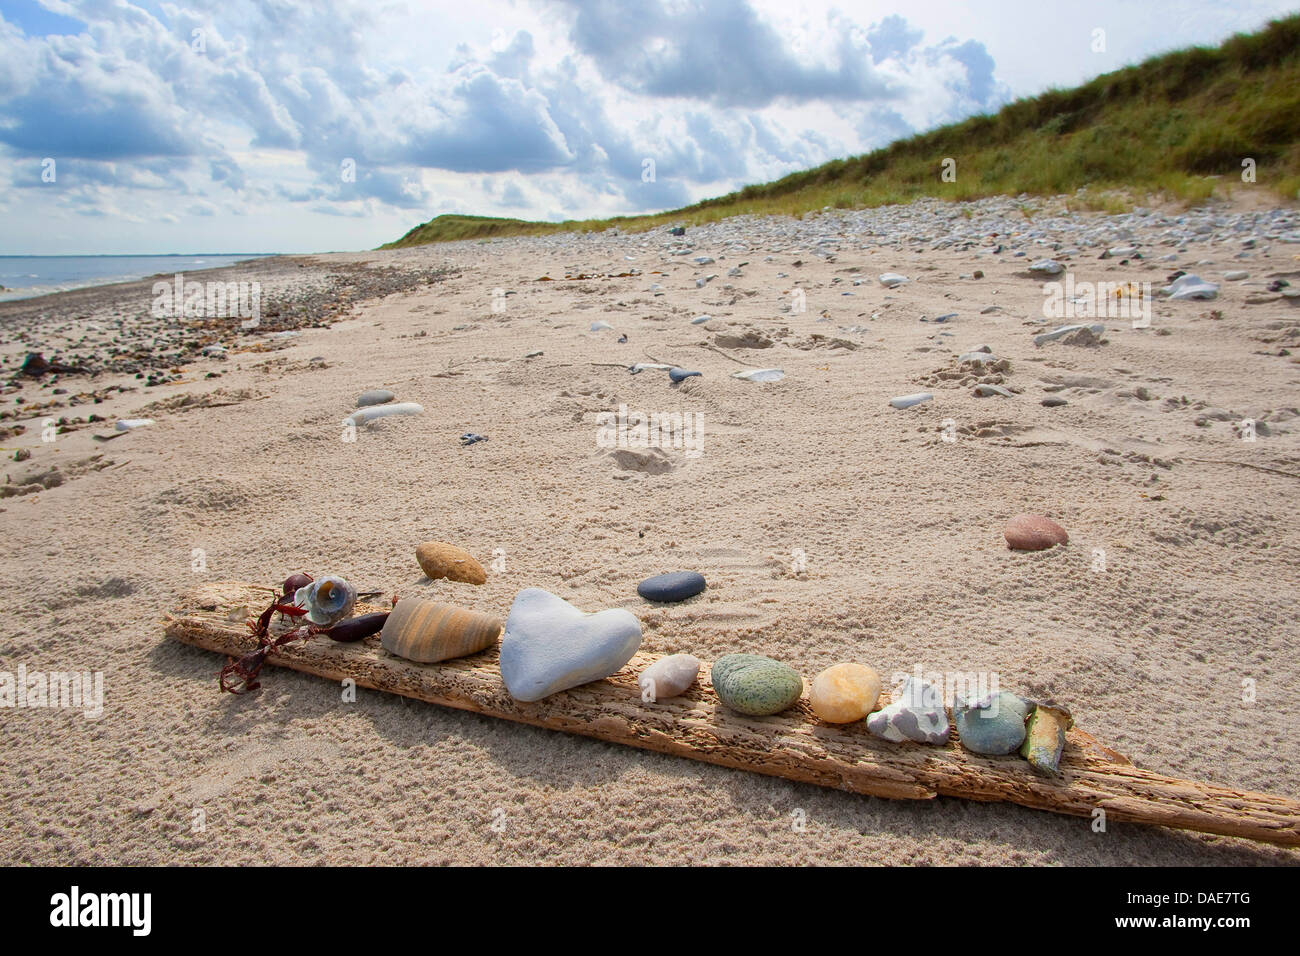 collection of noticeable stones lying on a piece of driftwood at the North Sea sand beach, Germany - Stock Image